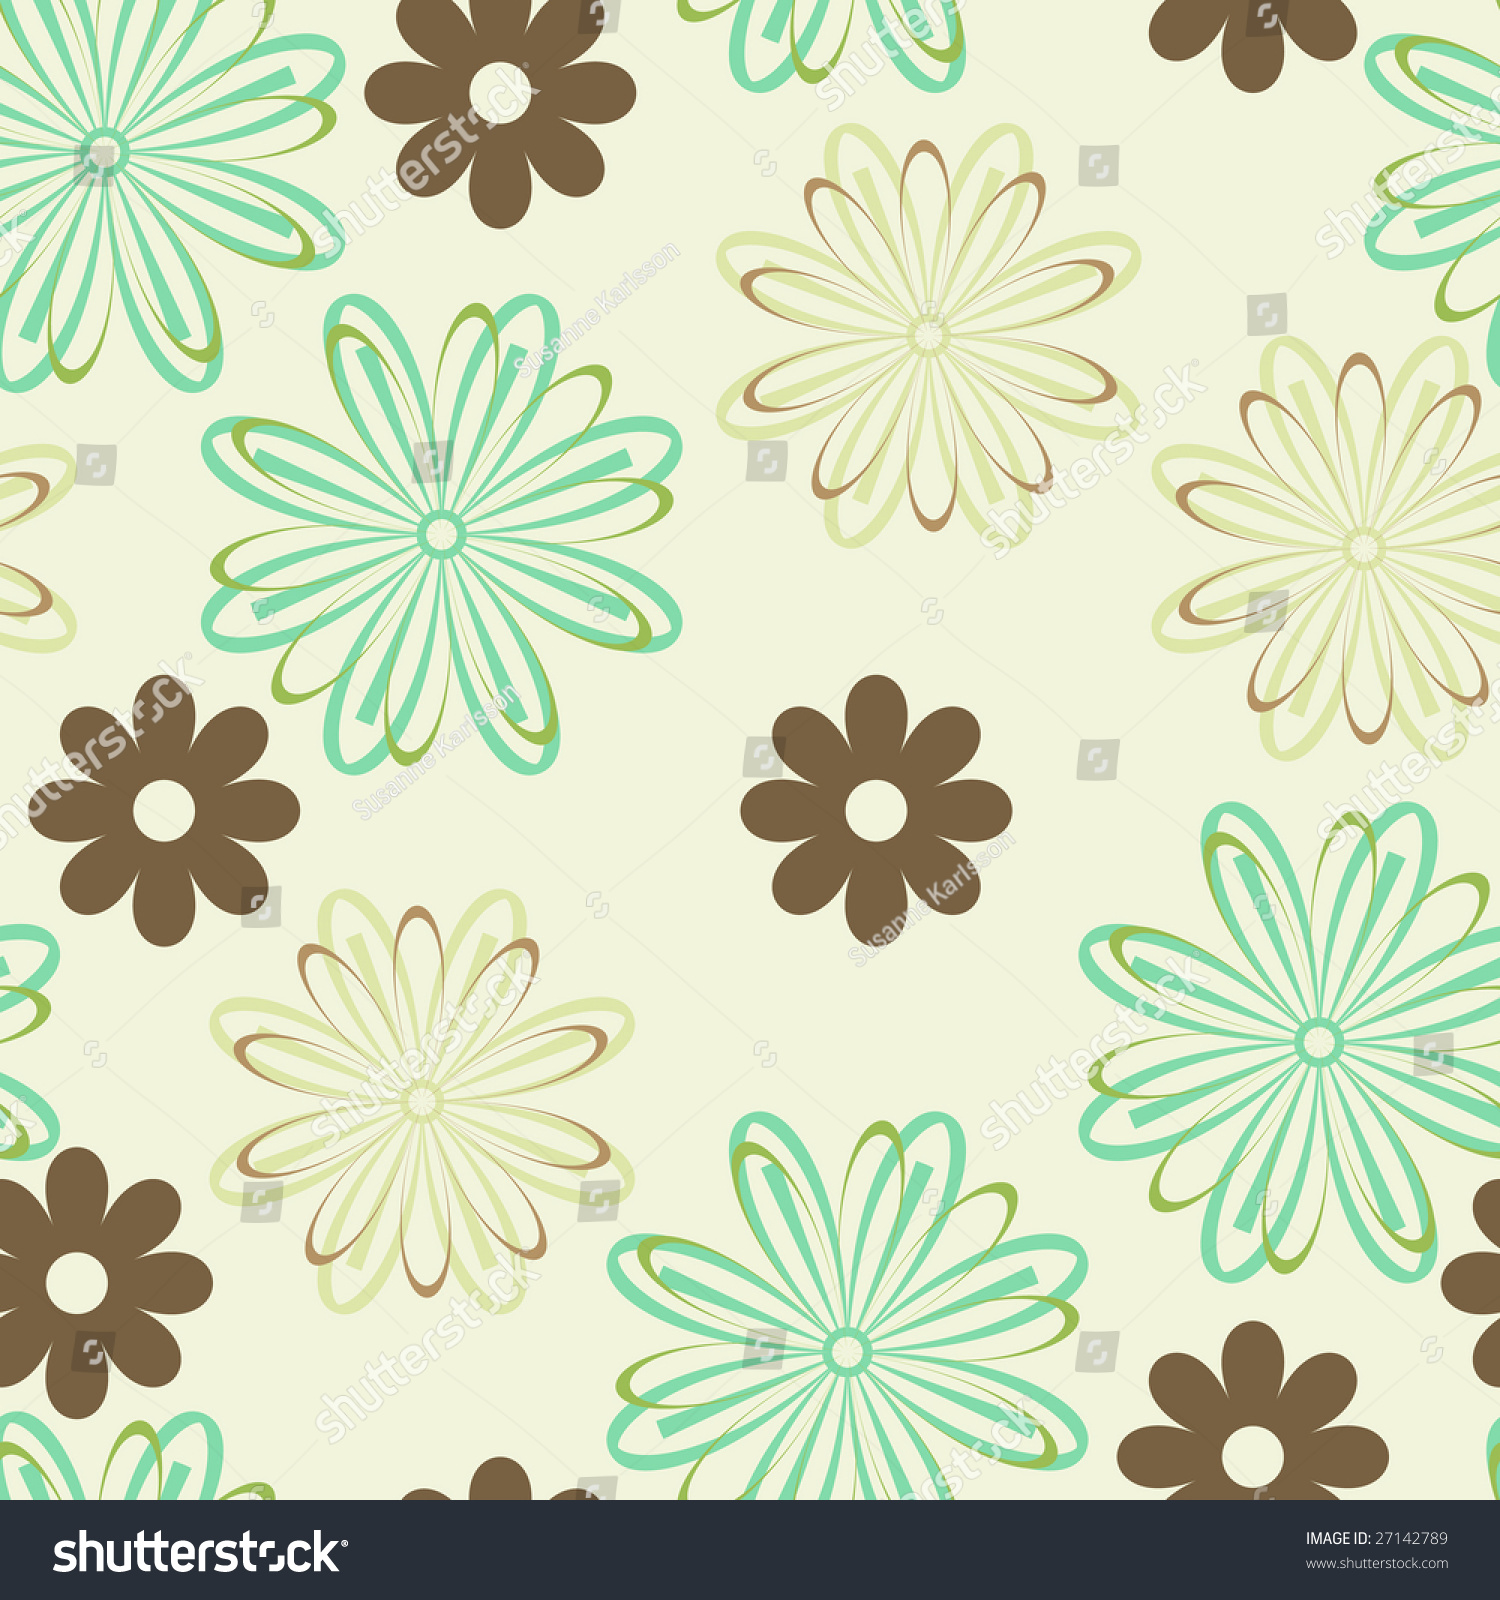 Green Flower Line Drawing : Green and brown line art flowers seamless background